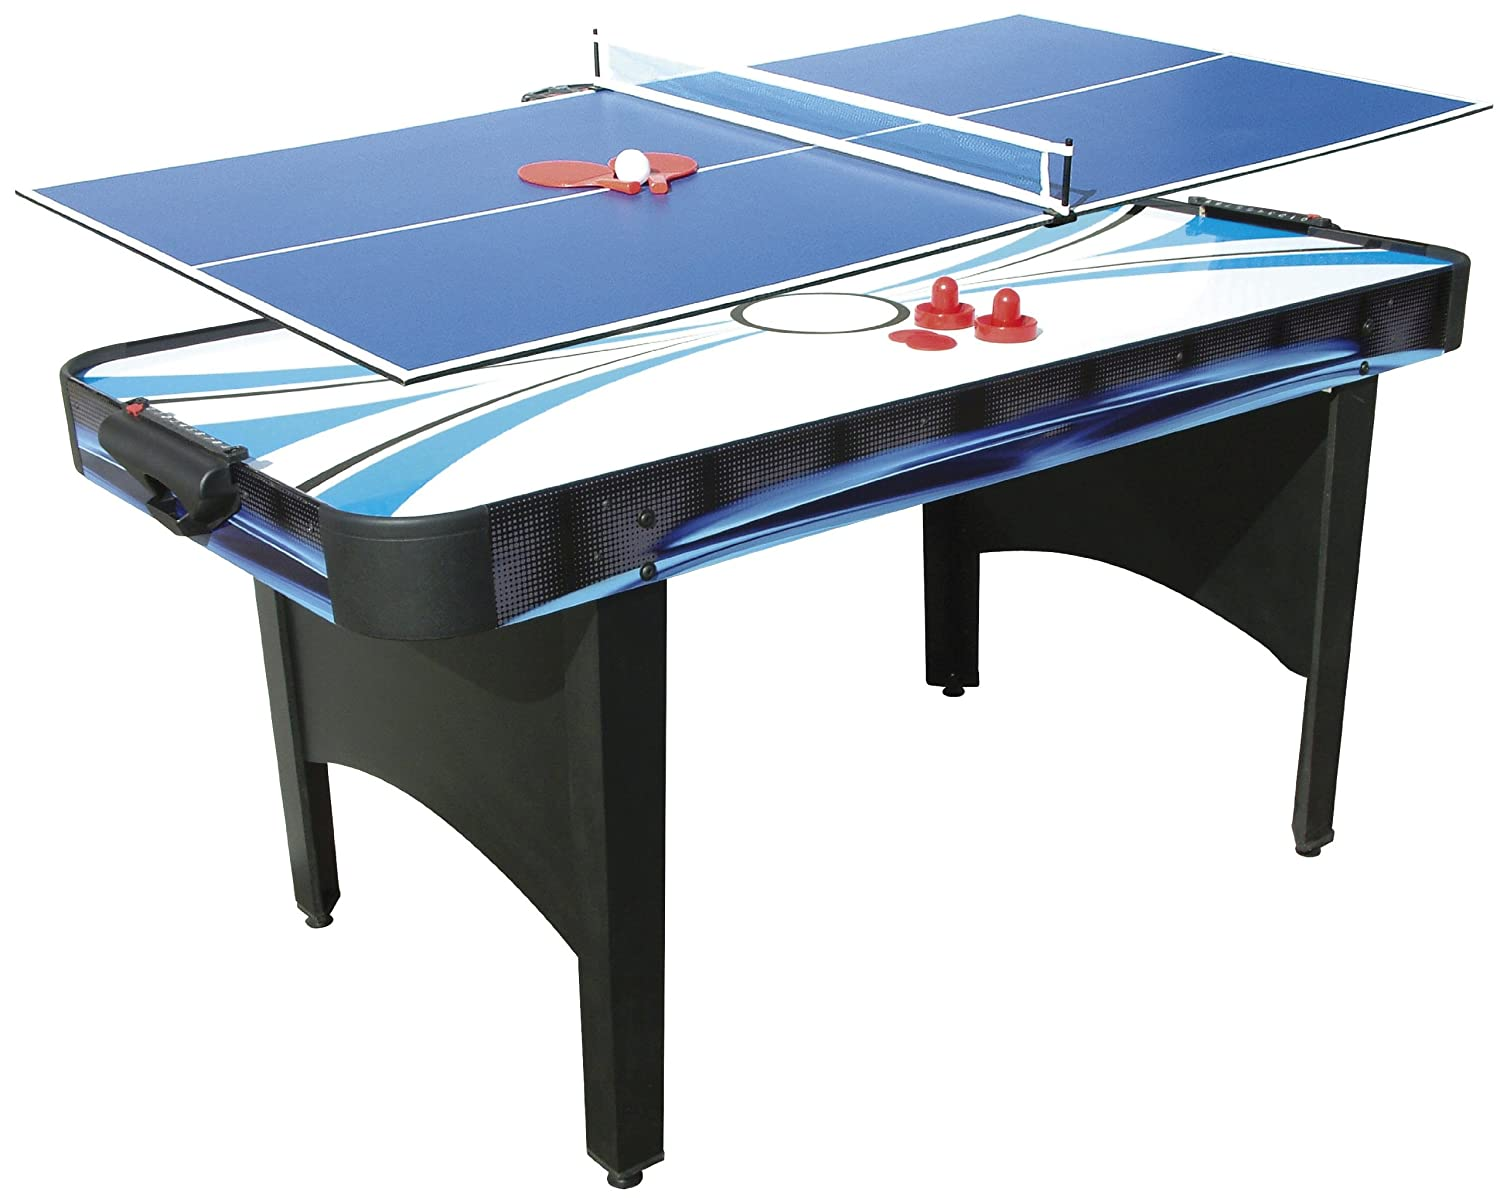 Mightymast Leisure 6ft TYPHOON 2 In 1 Electric Air Hockey U0026 Table Tennis  Game With All Accessories: Amazon.co.uk: Sports U0026 Outdoors